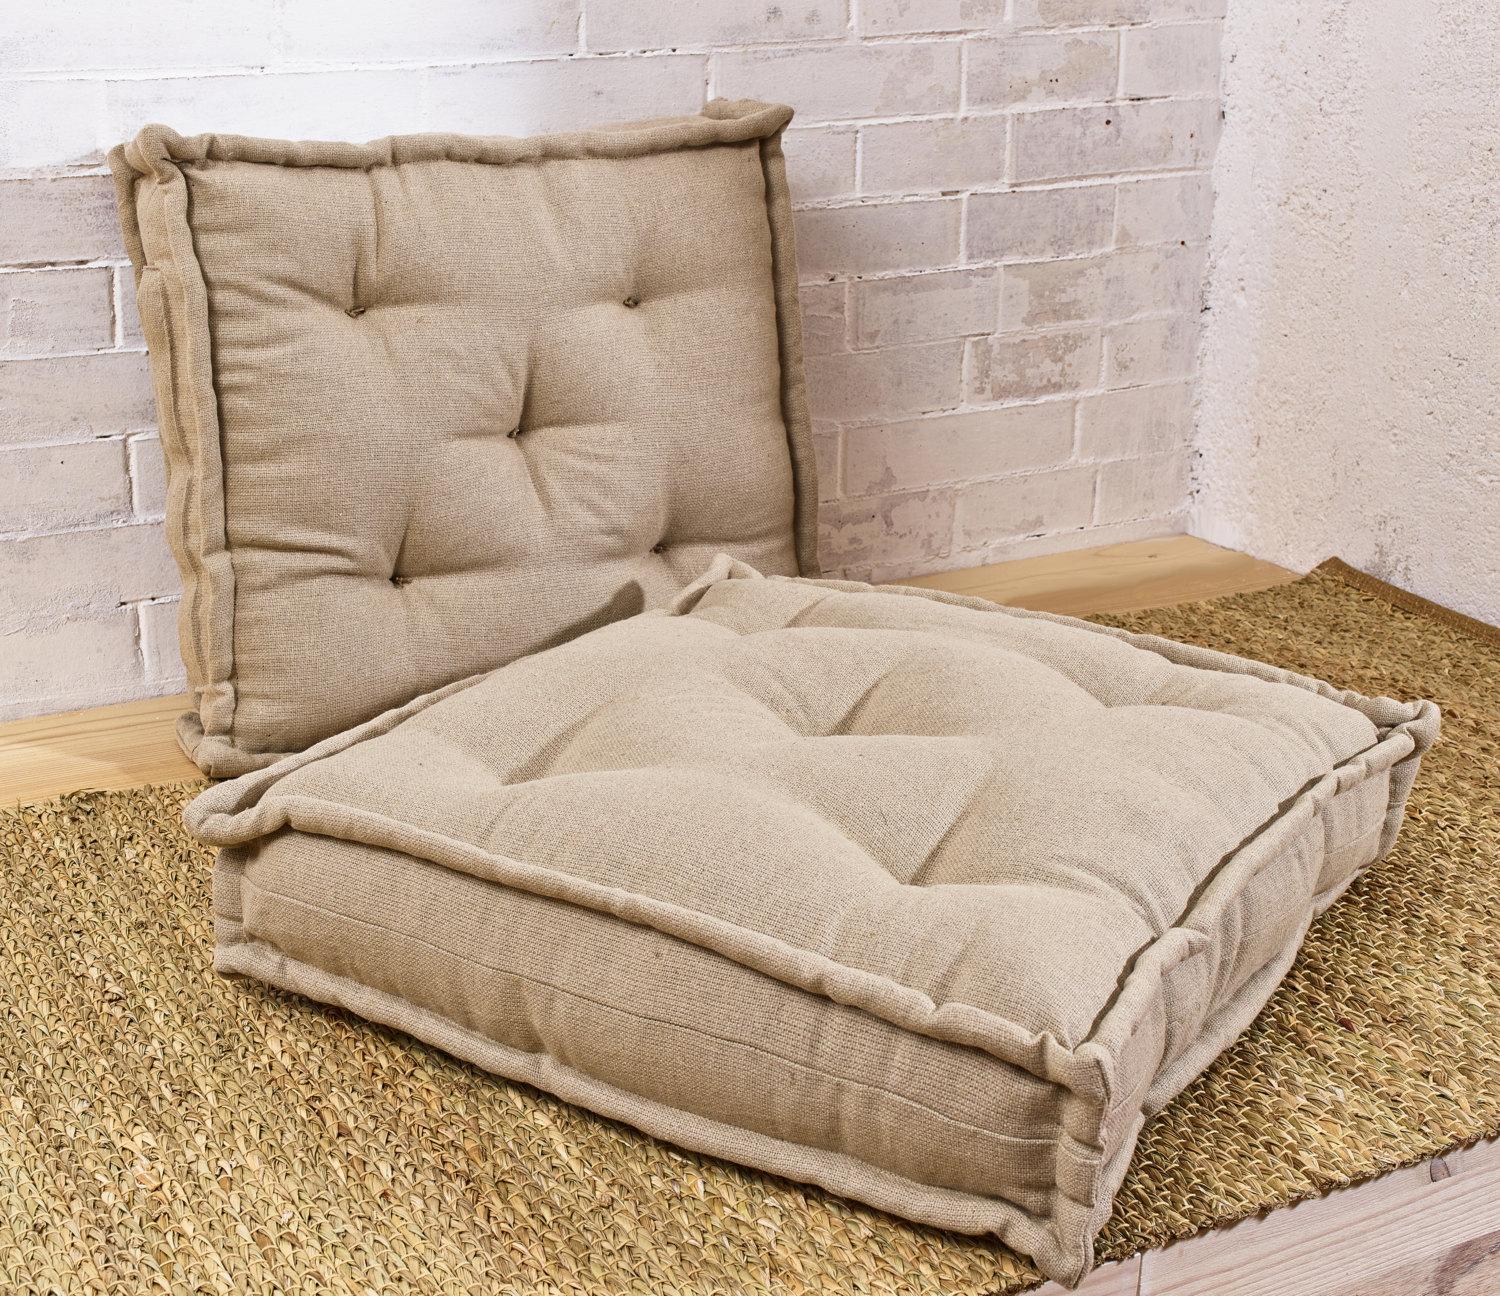 Wool Filled Tufted Cushion Floor Cushion Square Chair